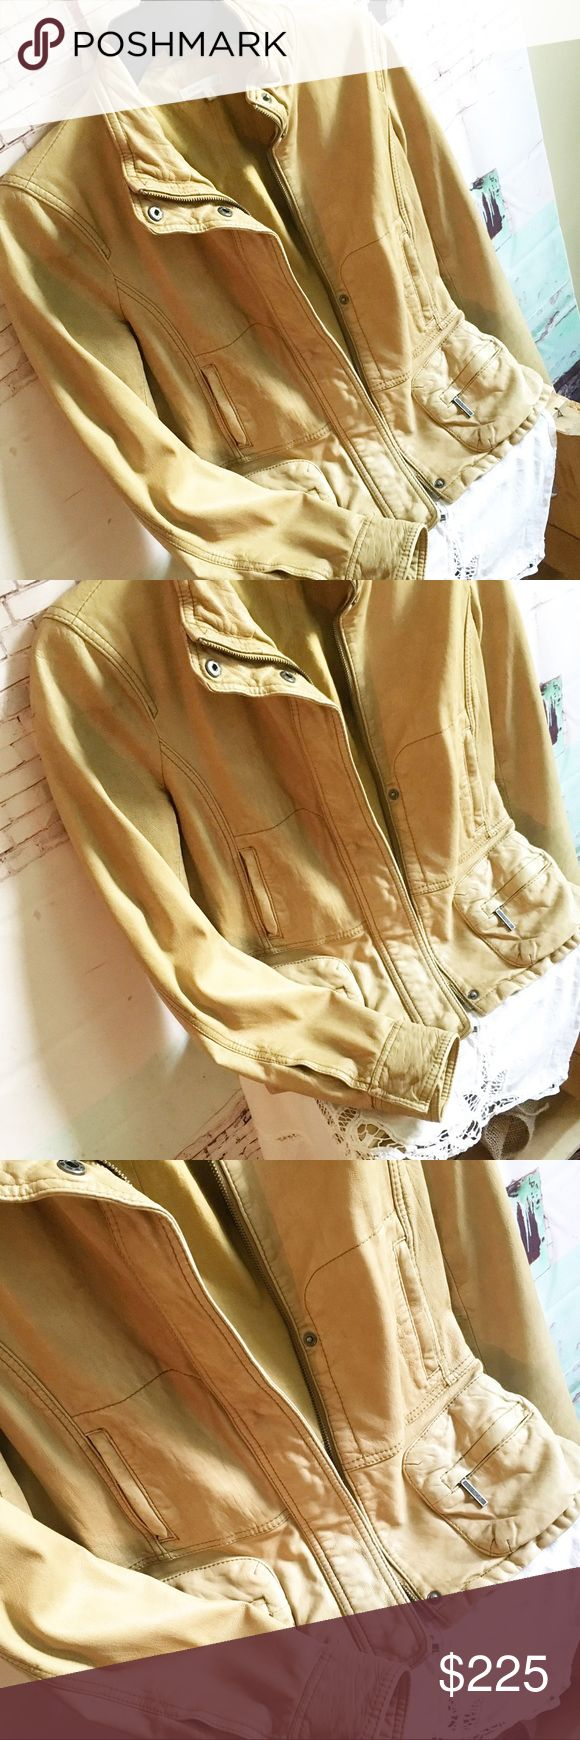 """GORGEOUS VINCE TAN LEATHER JACKET, Size M VINCE Leather Jacket, Size Medium Beautiful tan buttery soft leather jacket.  No rips, tears or stains.  Measures 19"""" in chest, 15.5 shoulder to shoulder, 23"""" long and sleeve length is 25"""".  This jacket retailed at $700. Vince Jackets & Coats"""